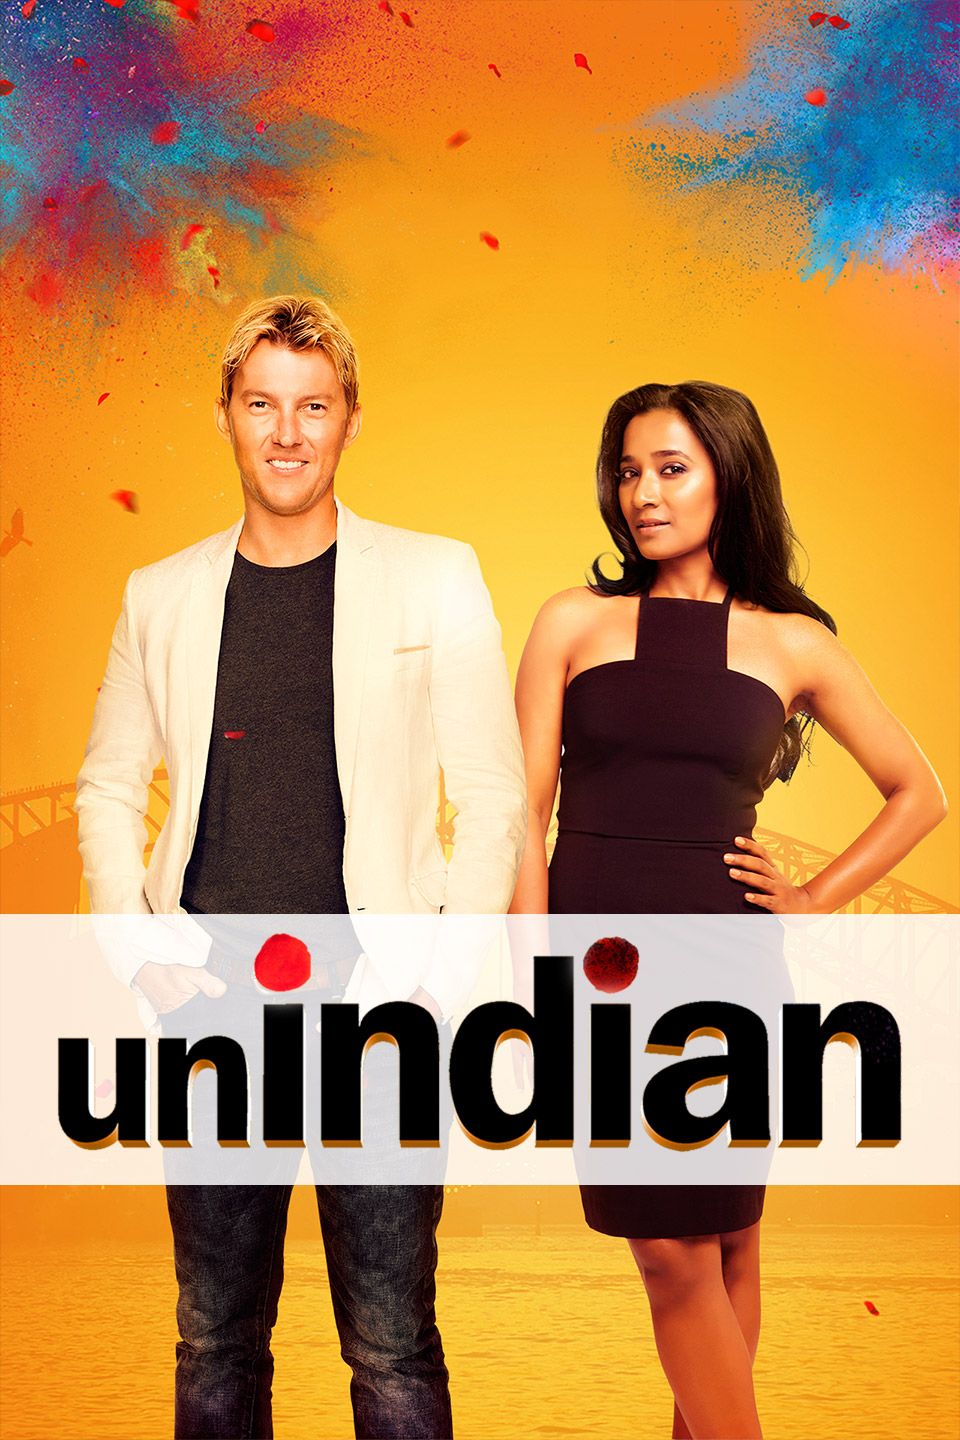 Unindian-960x1440-Portrate